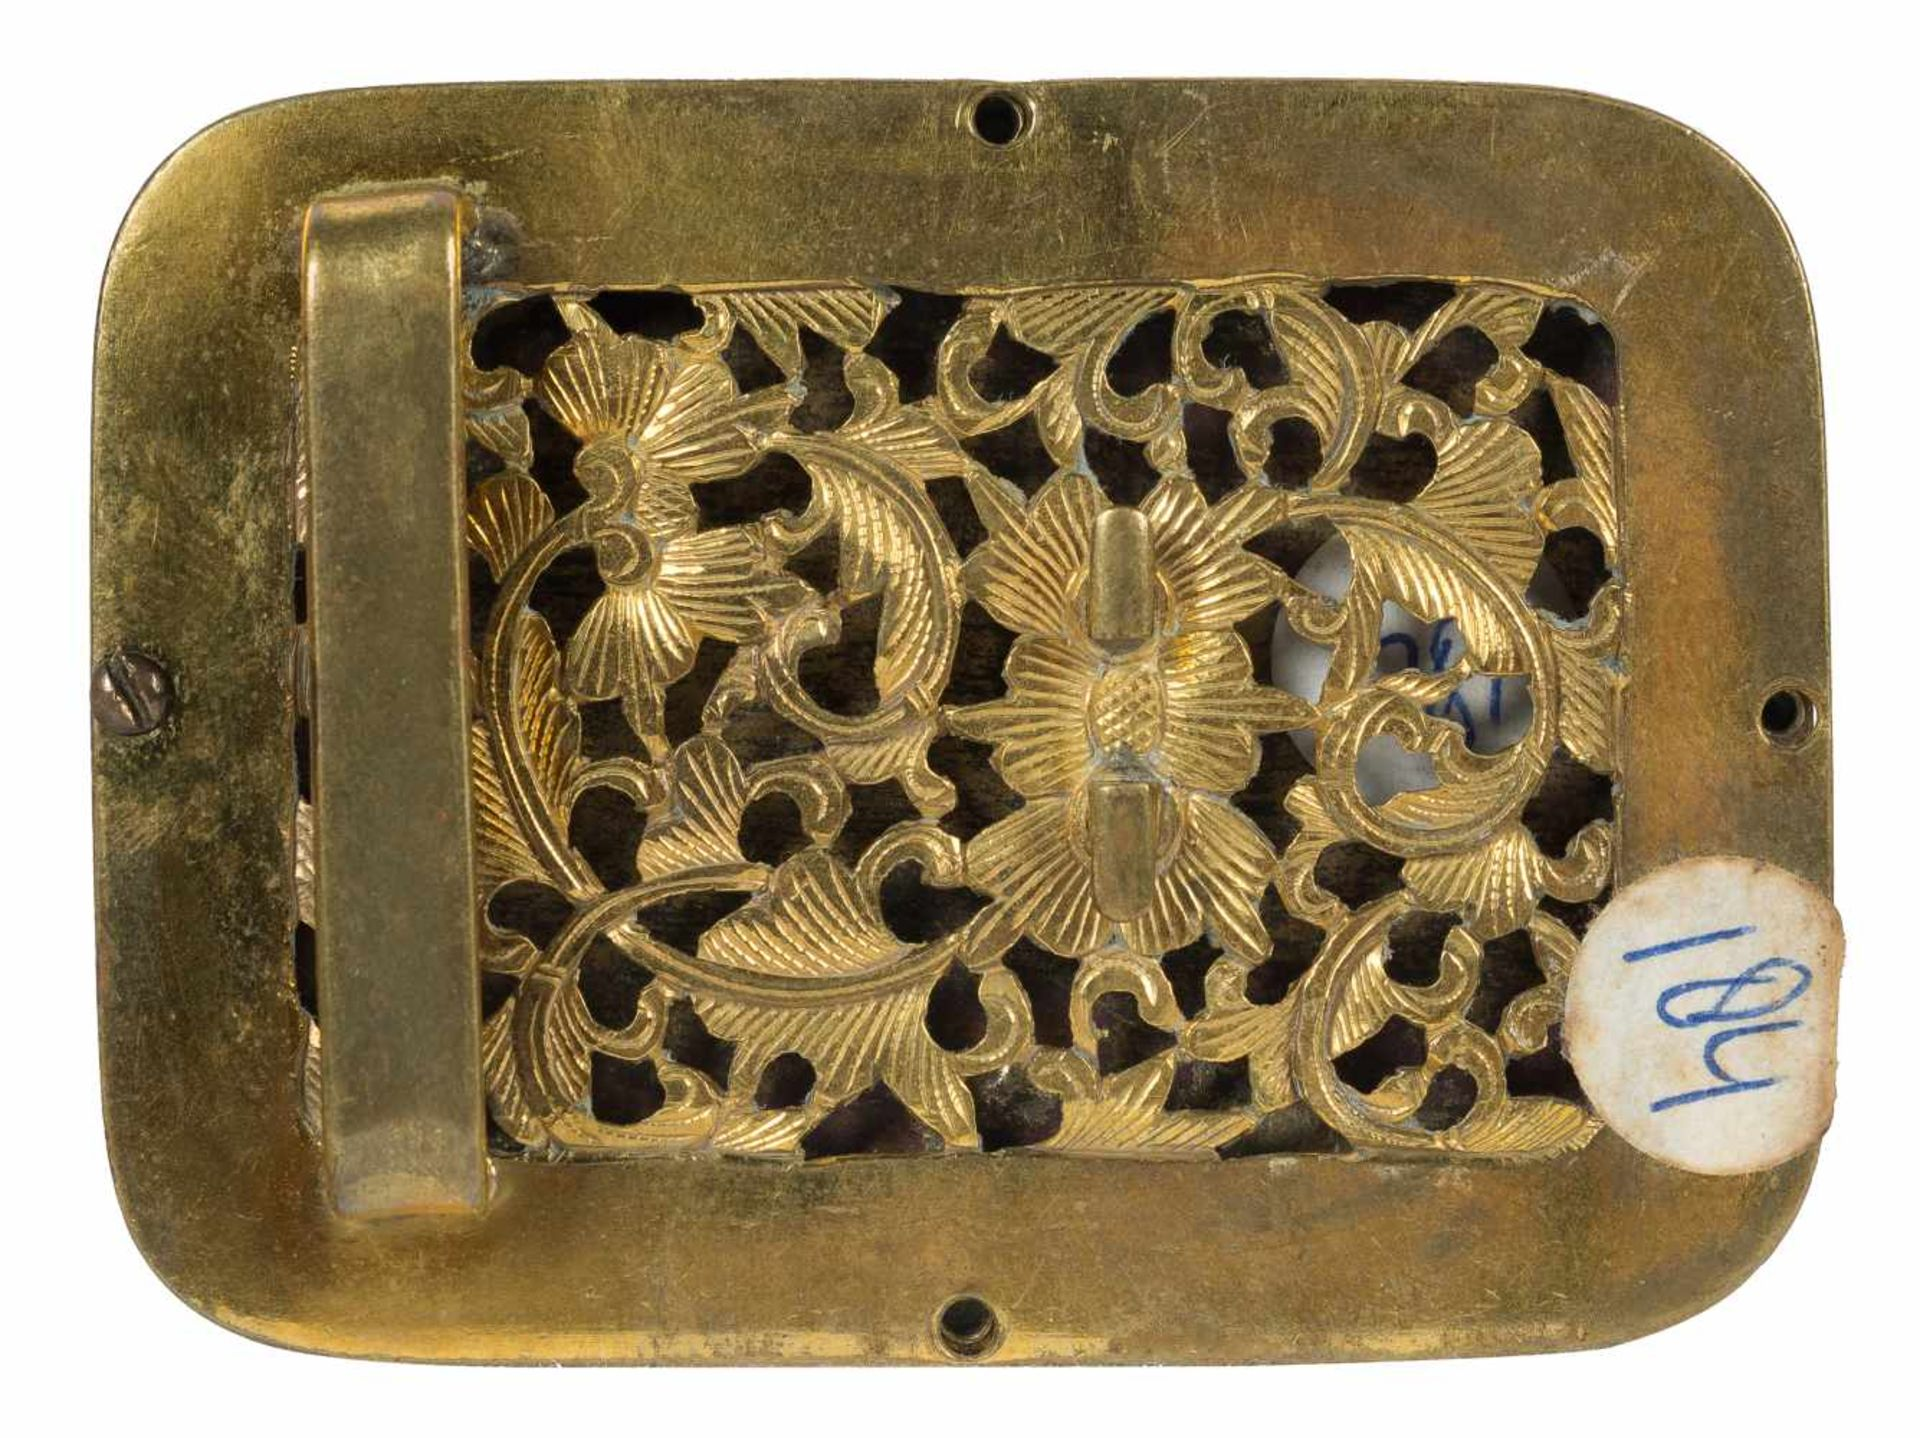 Los 20 - A Chinese gilt bronze belt buckle set with a finely carved jade plaque, Qing dynasty (1644-1911).<b